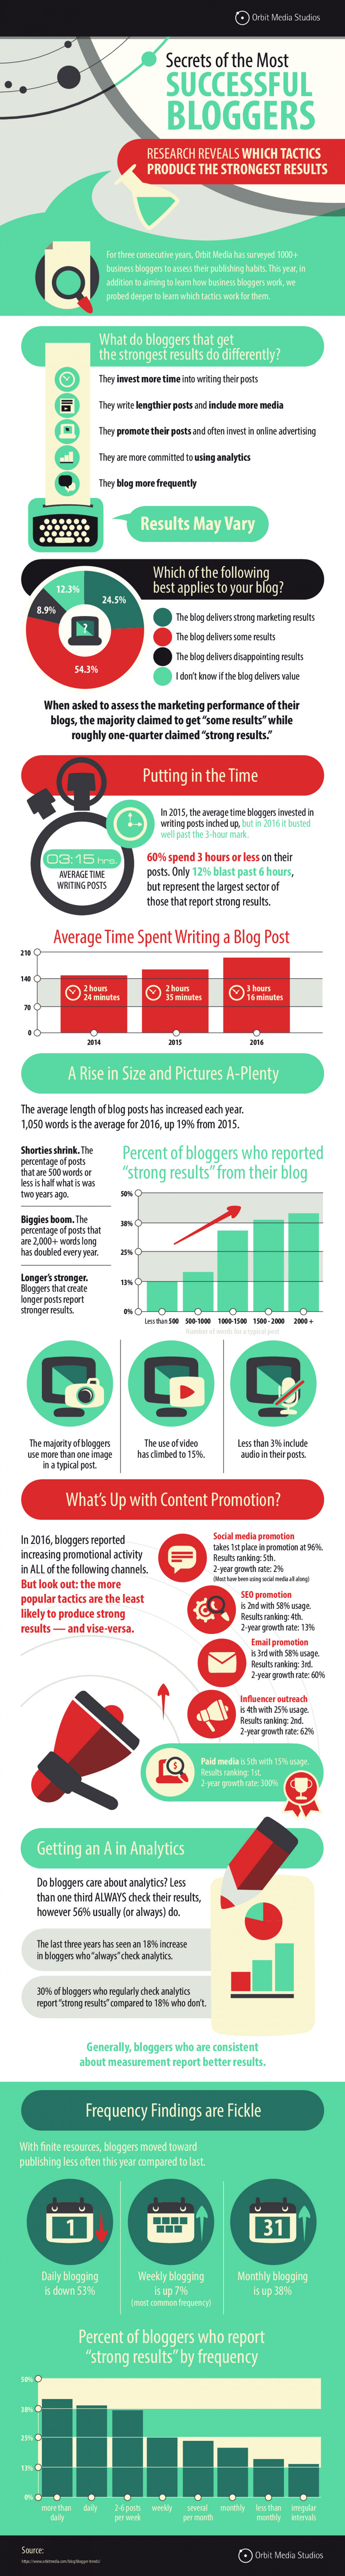 Secrets of the Most Successful Bloggers Infographic